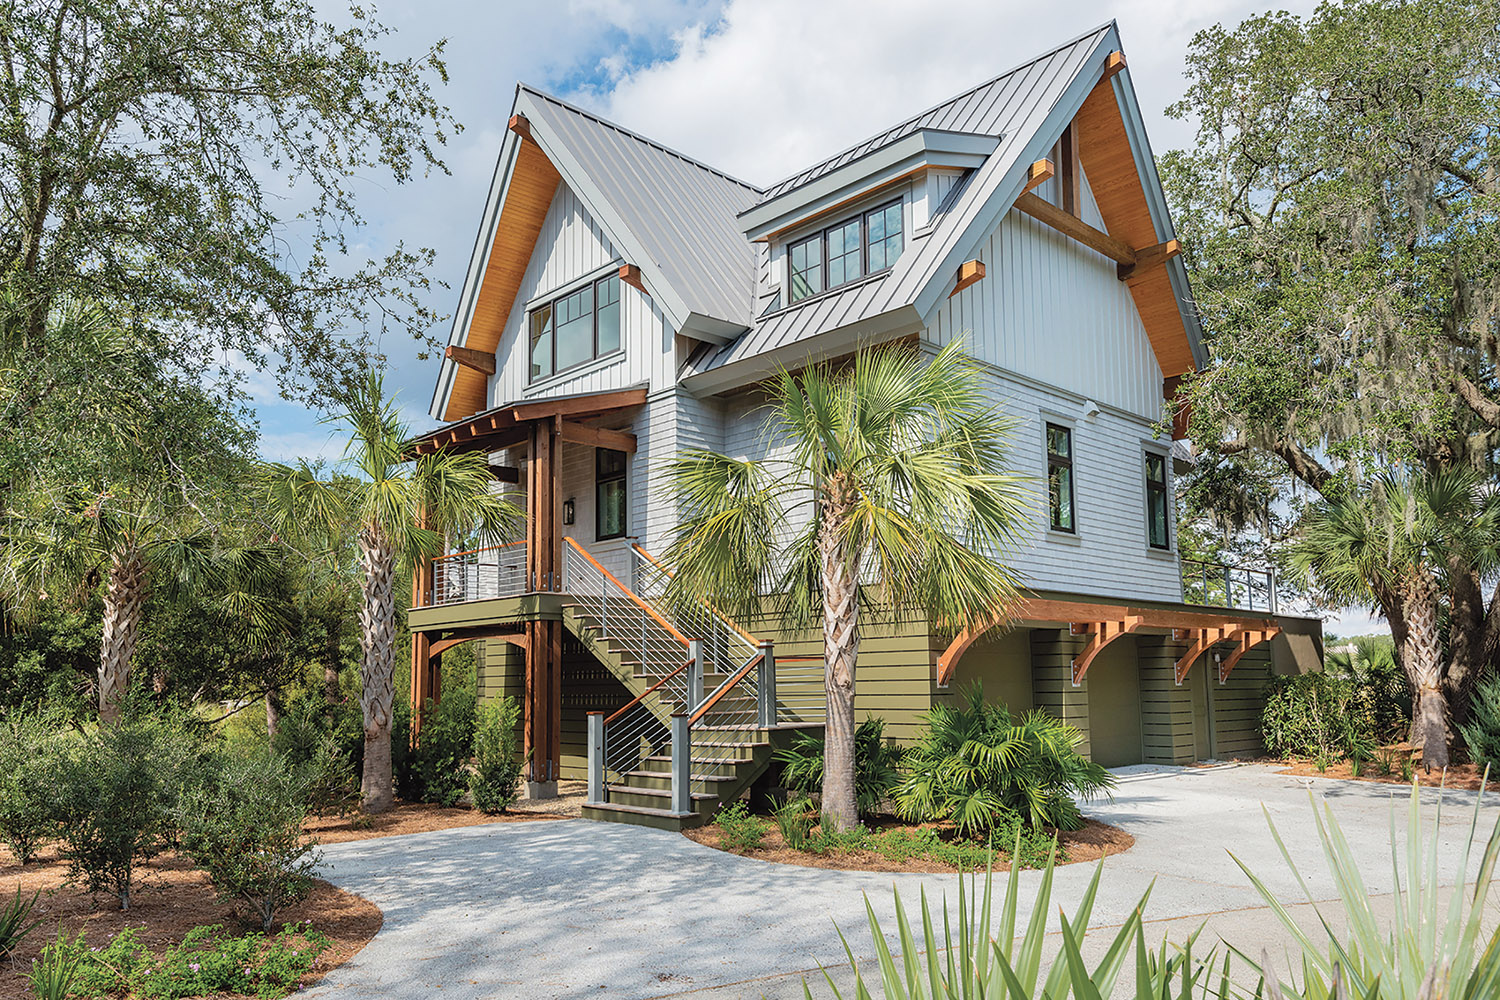 117 Halona Lane, Kiawah Island, SC, listed for $2,400,000